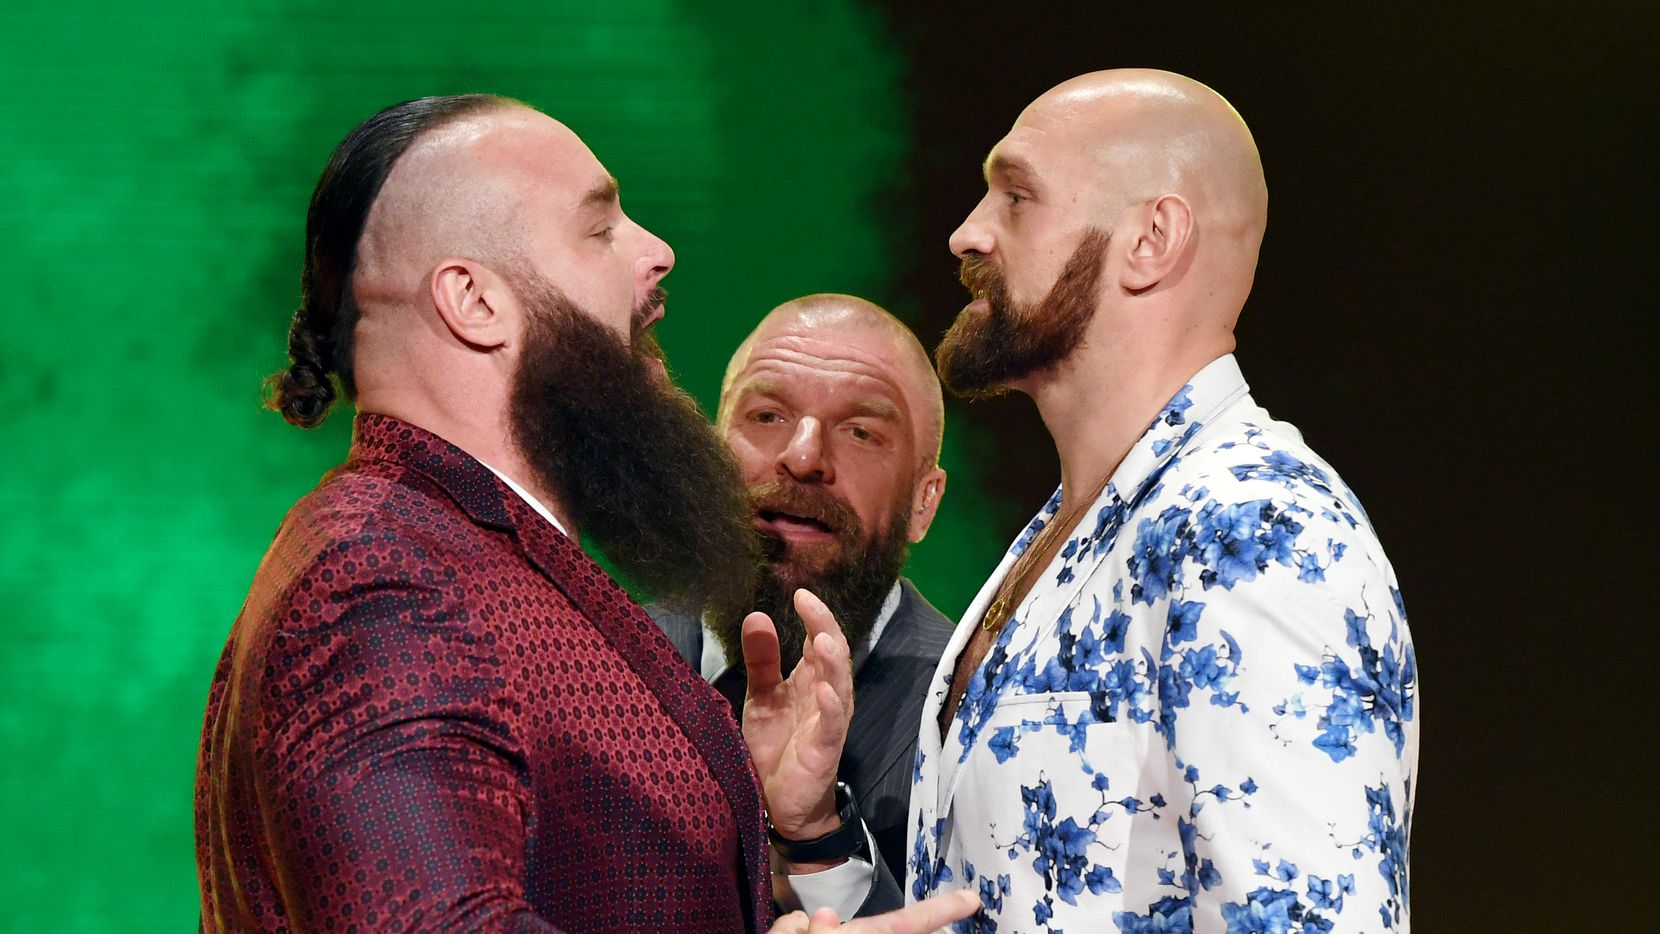 """LAS VEGAS, NEVADA - OCTOBER 11:  WWE Executive Vice President of Talent, Live Events and Creative Paul """"Triple H"""" Levesque (C) gets between WWE wrestler Braun Strowman (L) and heavyweight boxer Tyson Fury (R) as they face off during the announcement of their match at a WWE news conference at T-Mobile Arena on October 11, 2019 in Las Vegas, Nevada."""